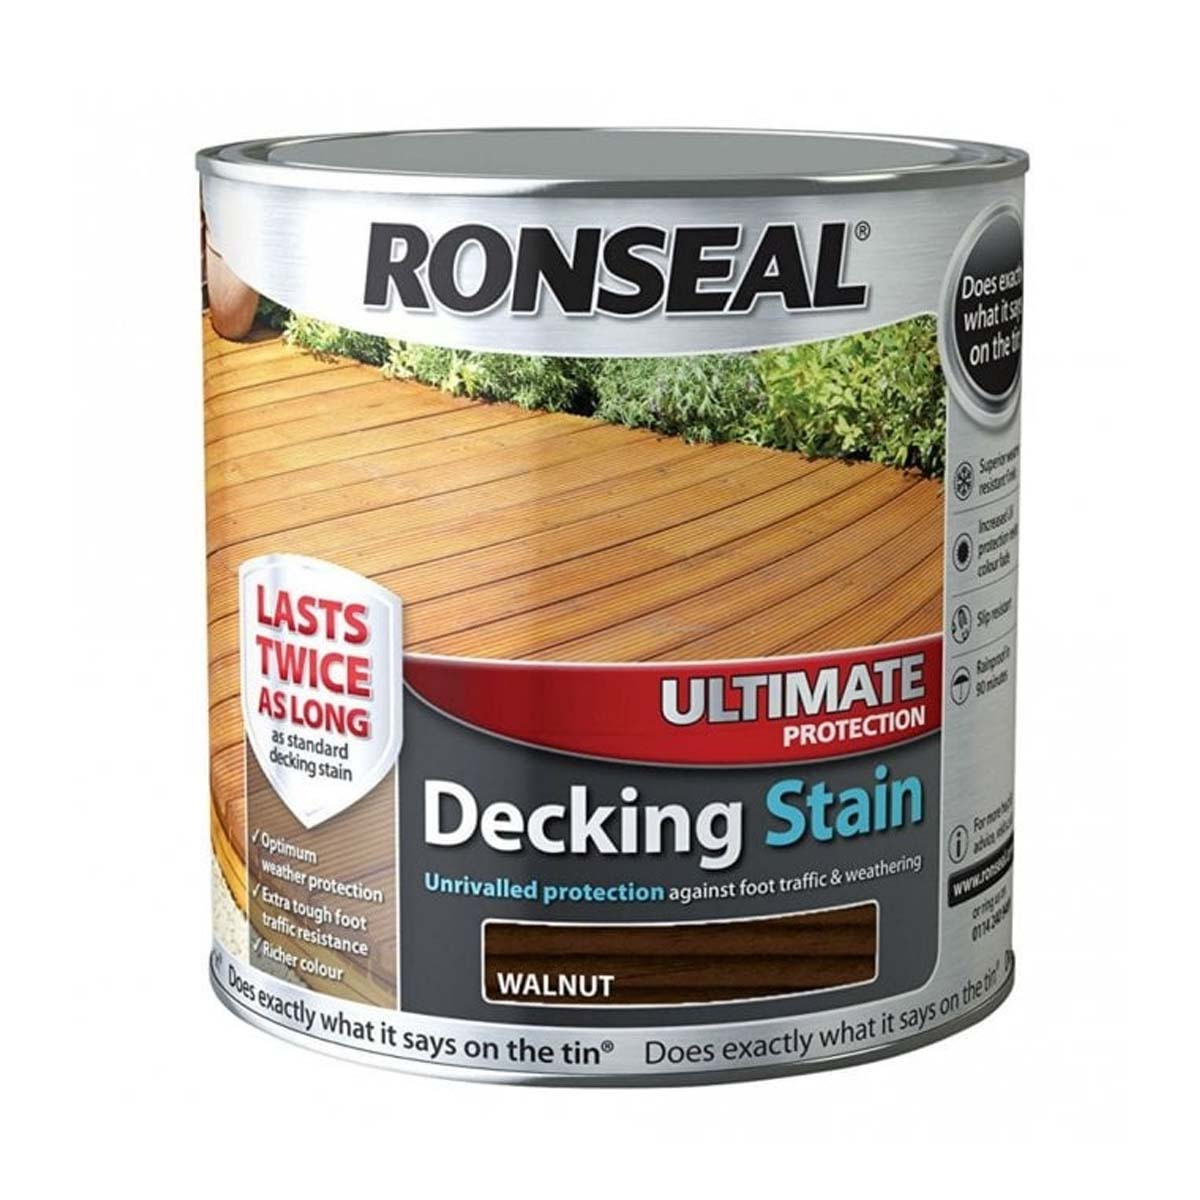 Ronseal Ultimate Protection Decking Stain Walnut 2.5L (37456)